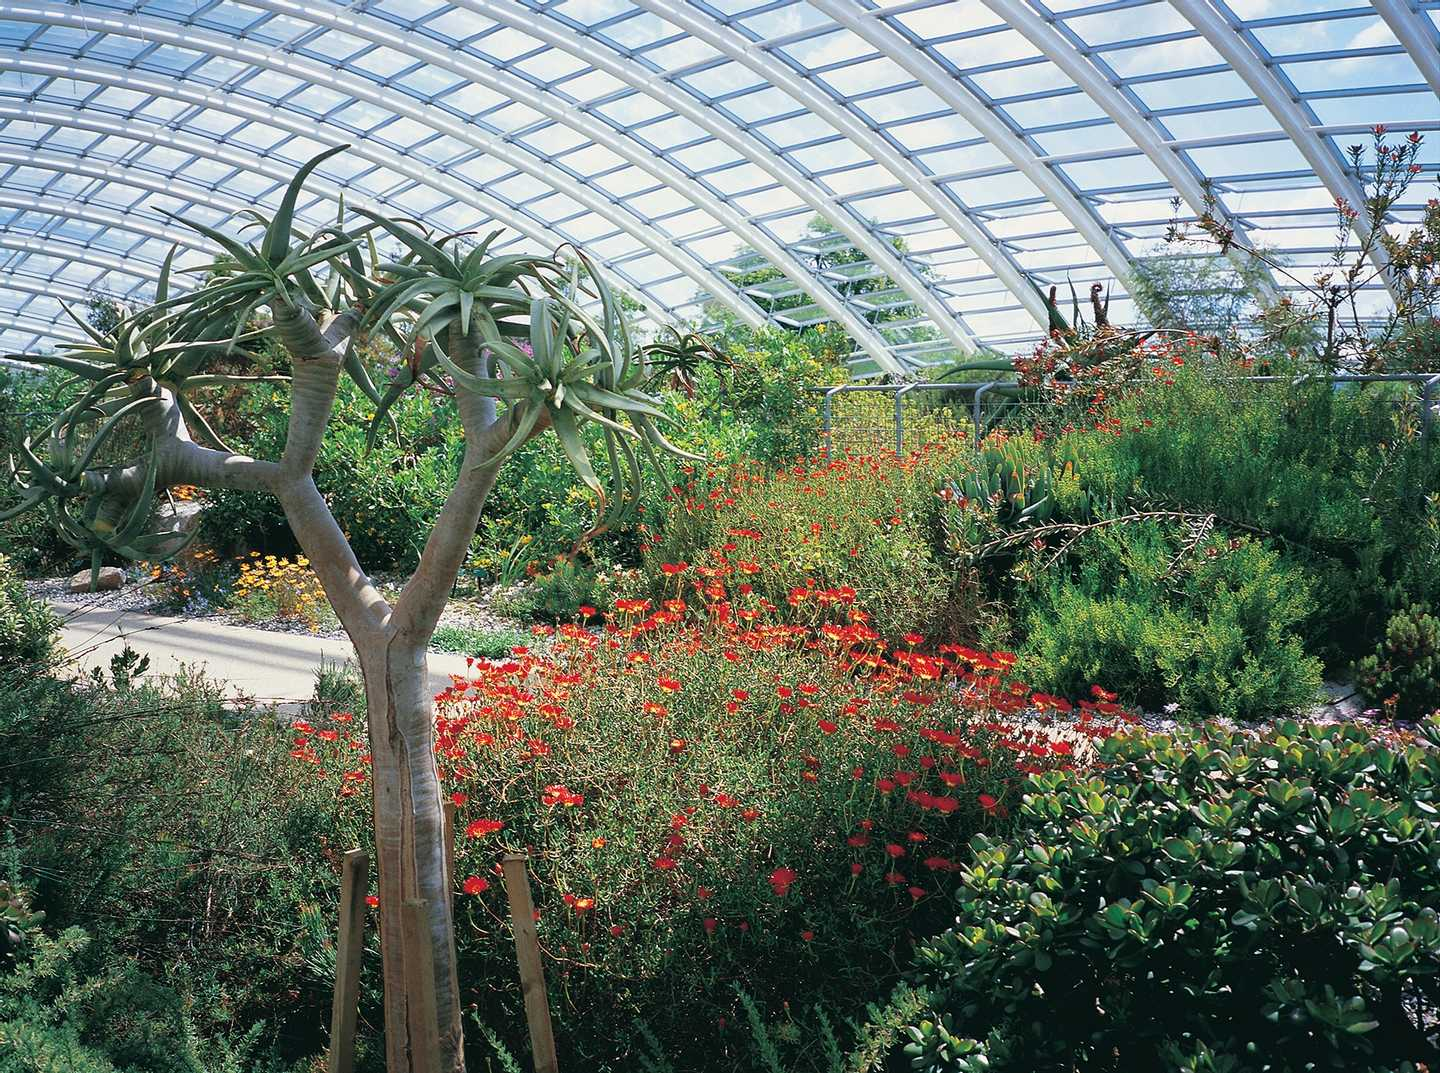 Interior of the National Botanic Garden of Wales